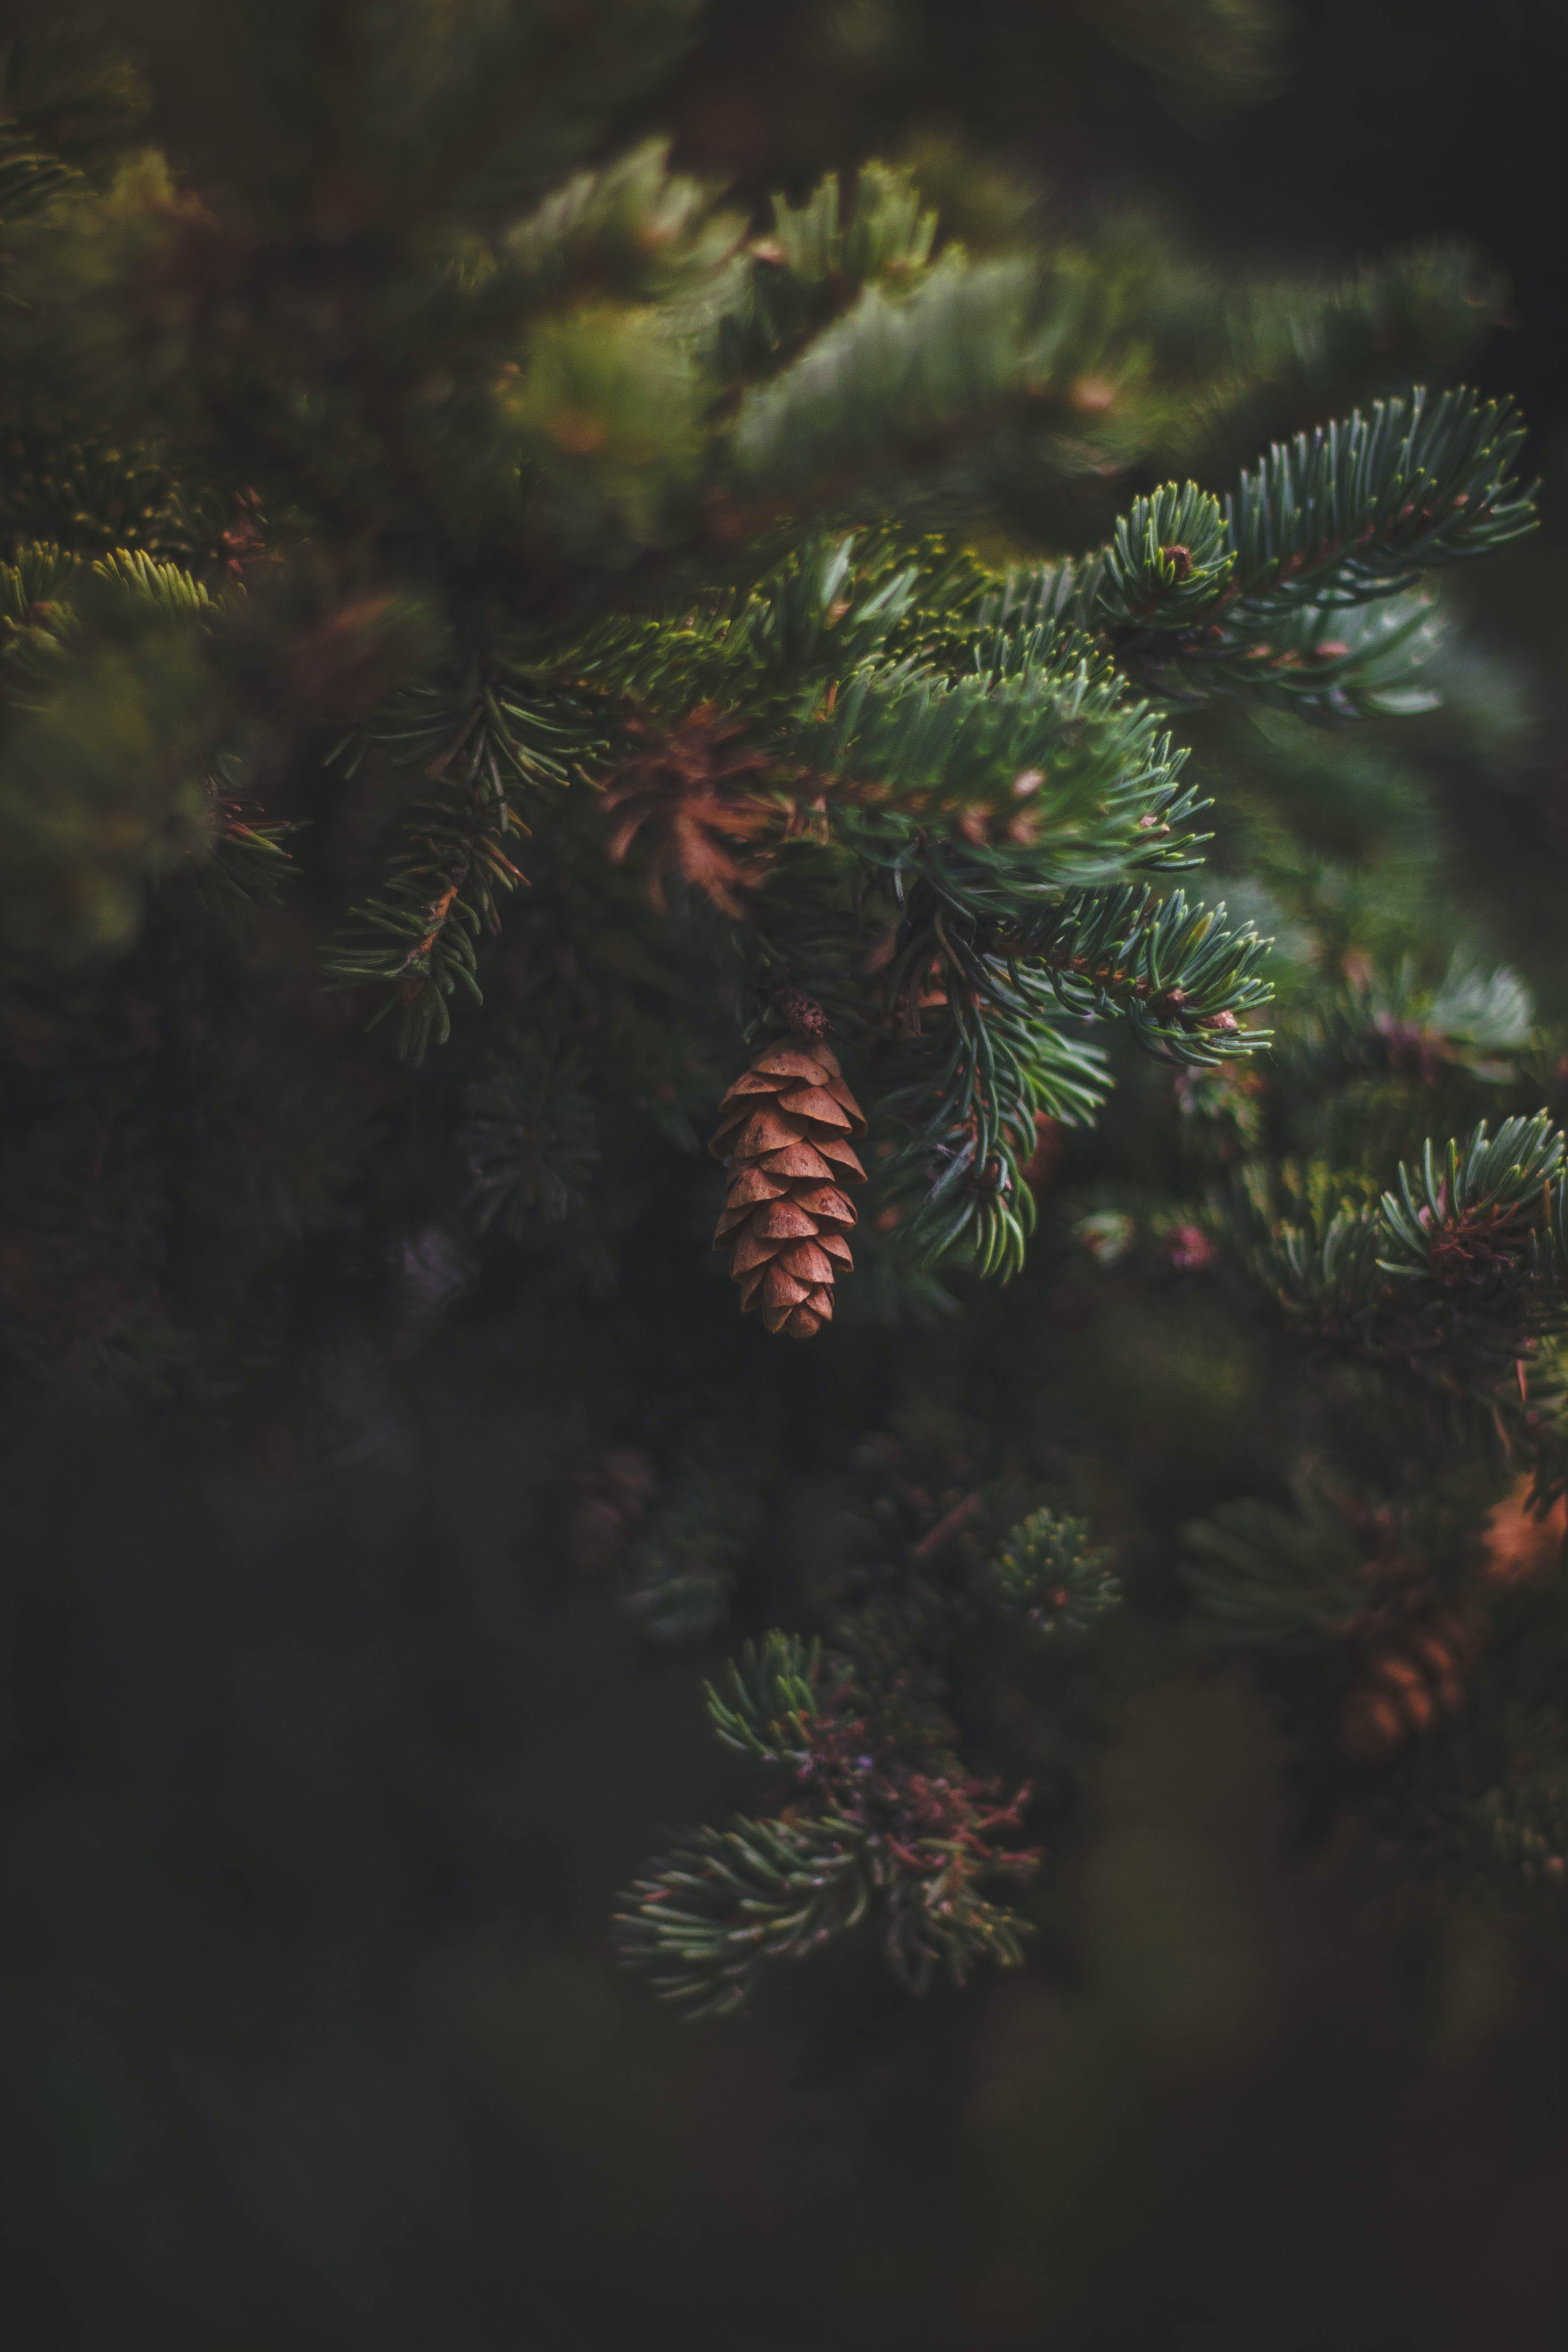 Closeup Photo of Pine Tree